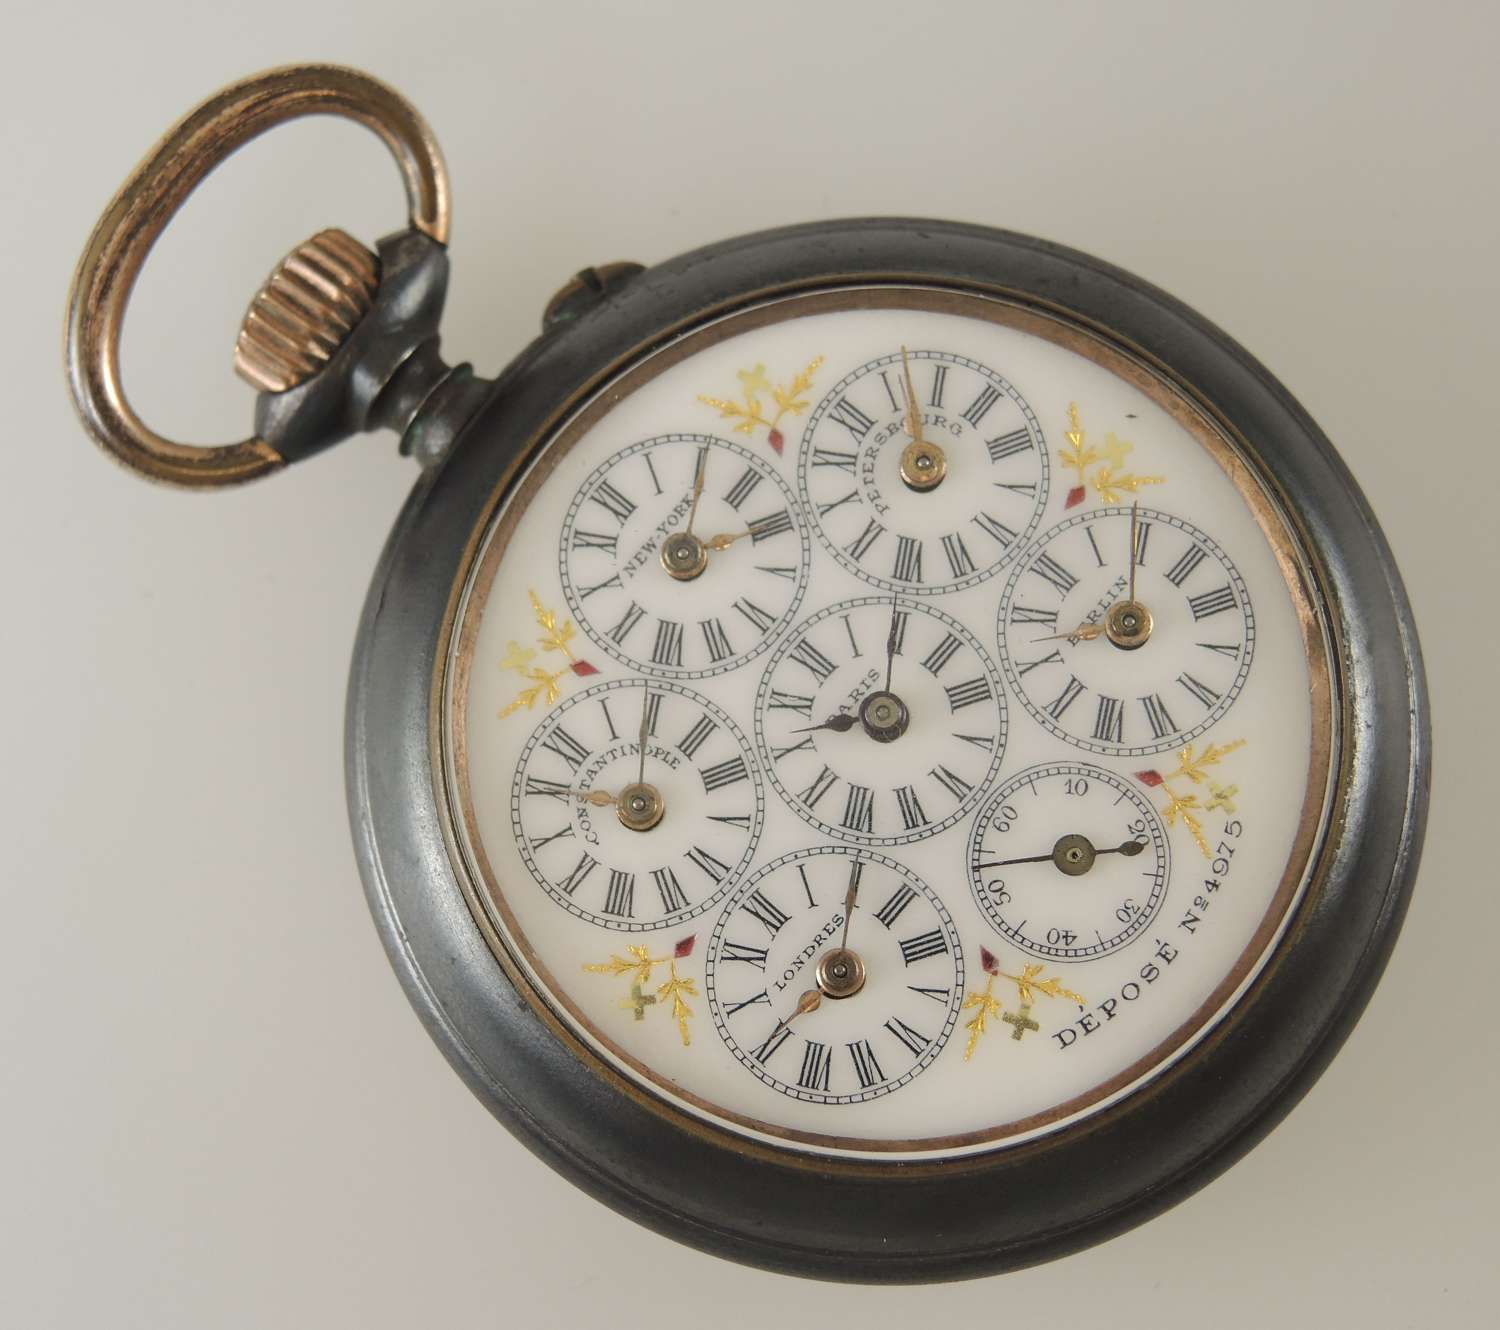 Rare WORLD TIME pocket watch c1890